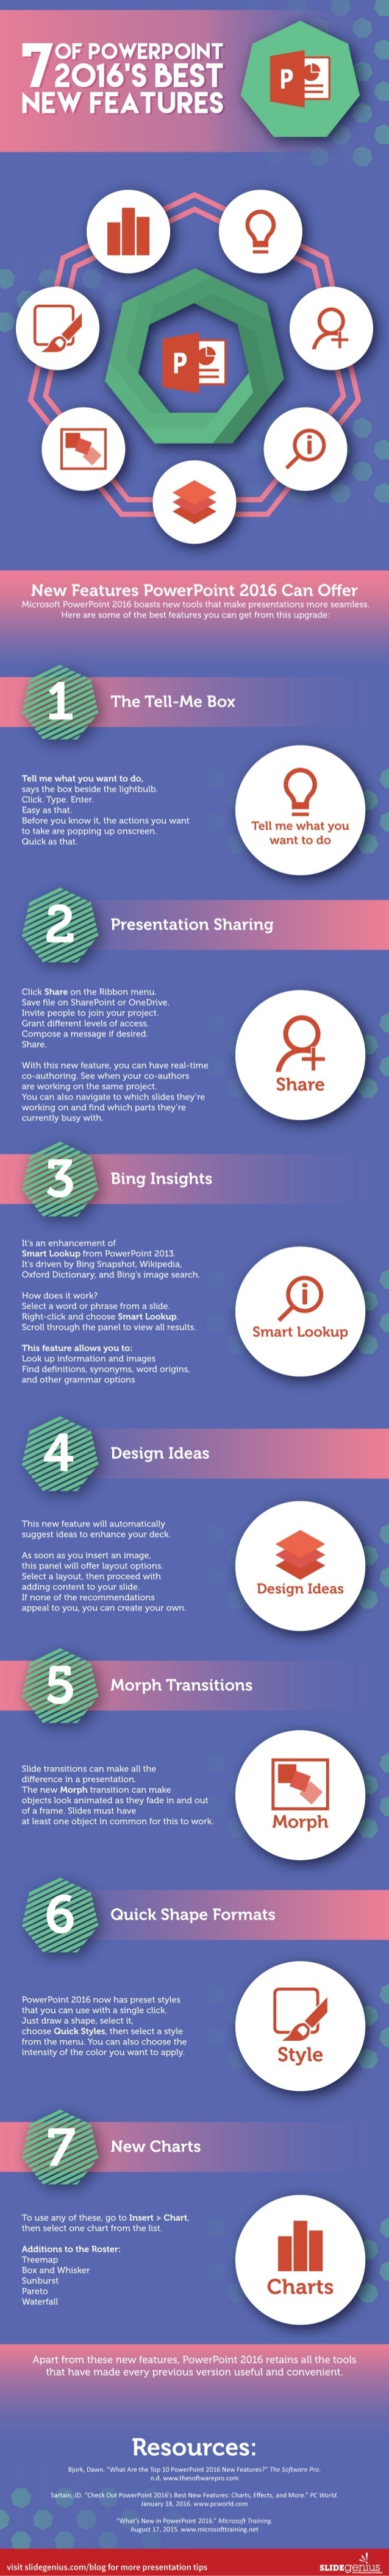 PowerPoint 2016 Best New Features Infographic - e-Learning